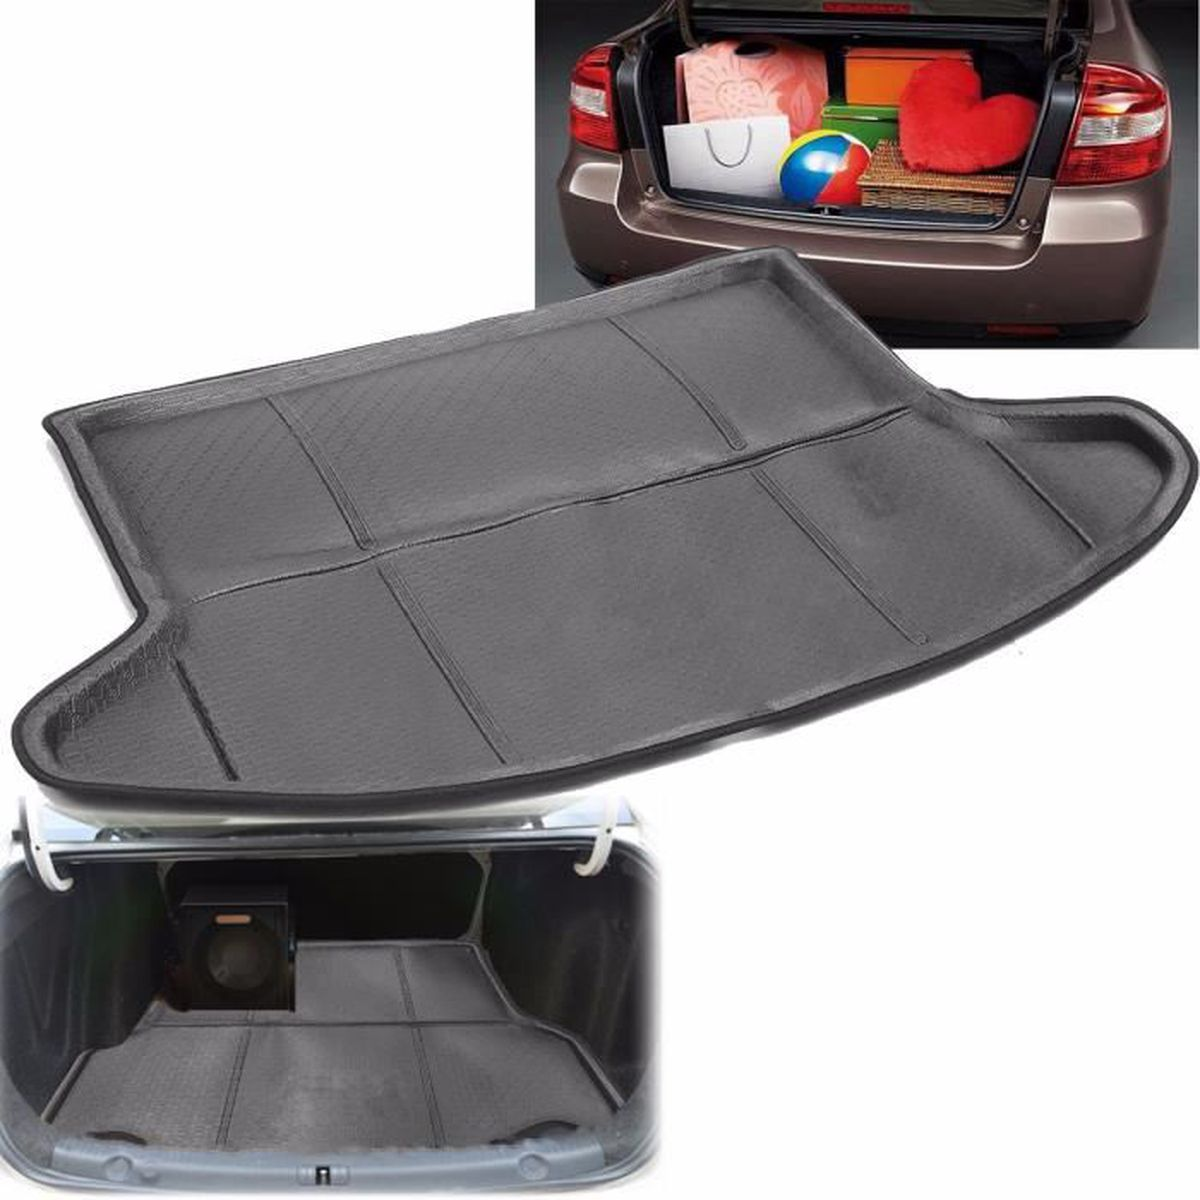 etanche sol mat tapis arri re coffre voiture cover pour mazda cx 5 2013 2016 achat vente. Black Bedroom Furniture Sets. Home Design Ideas